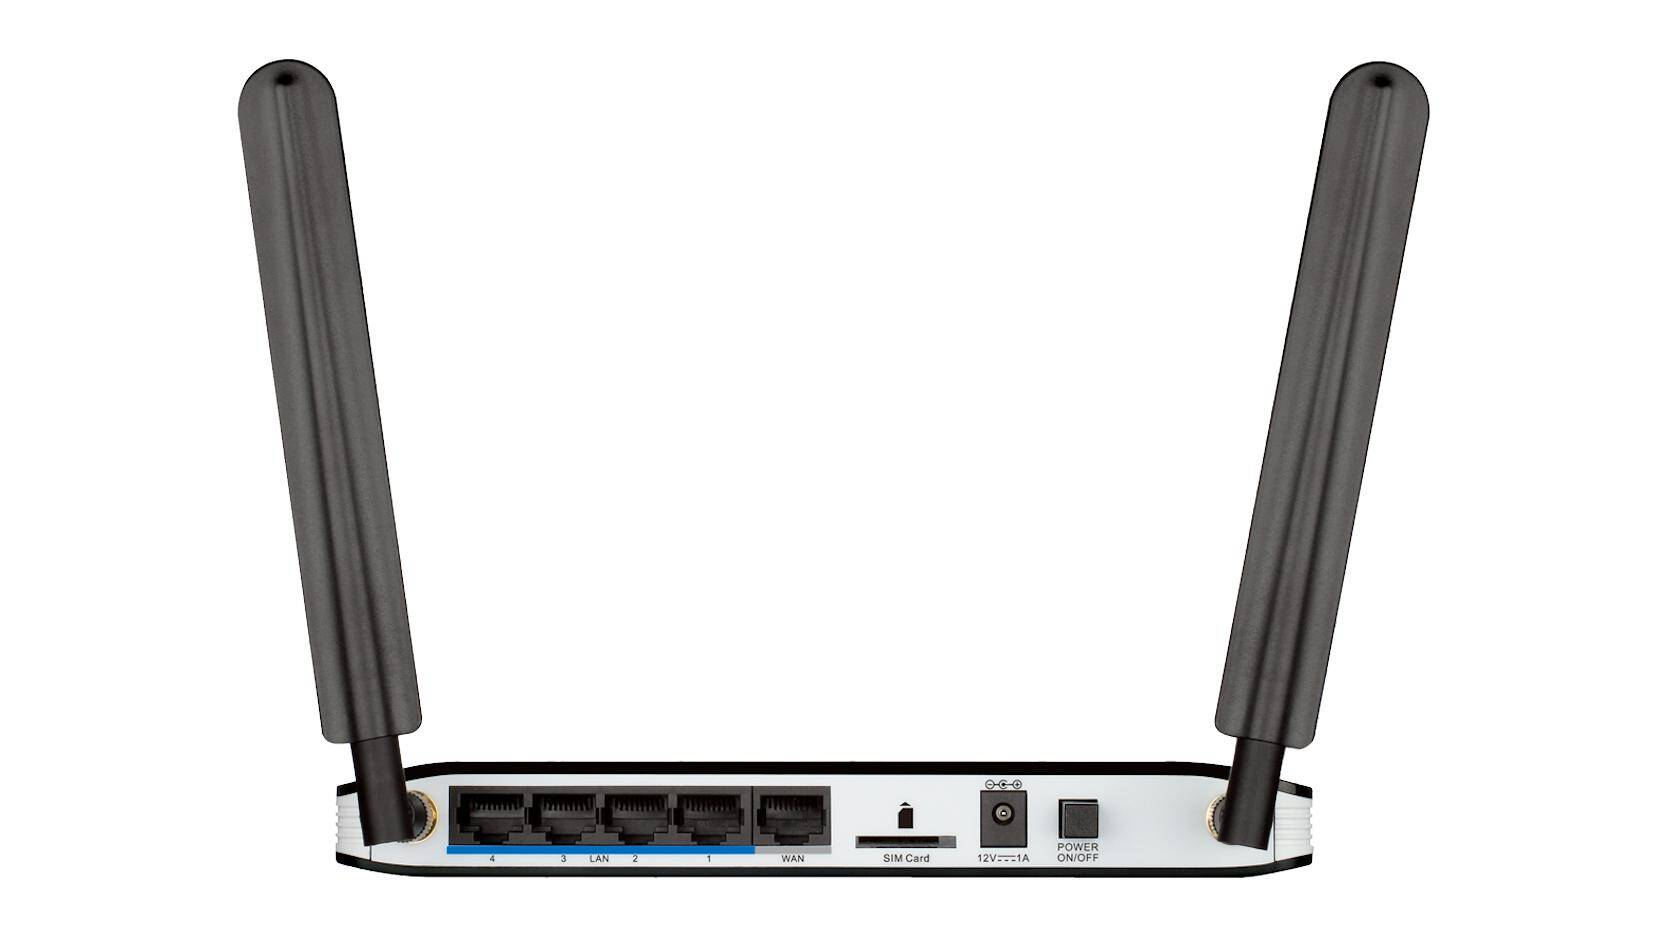 3G / 4G / LTE Router